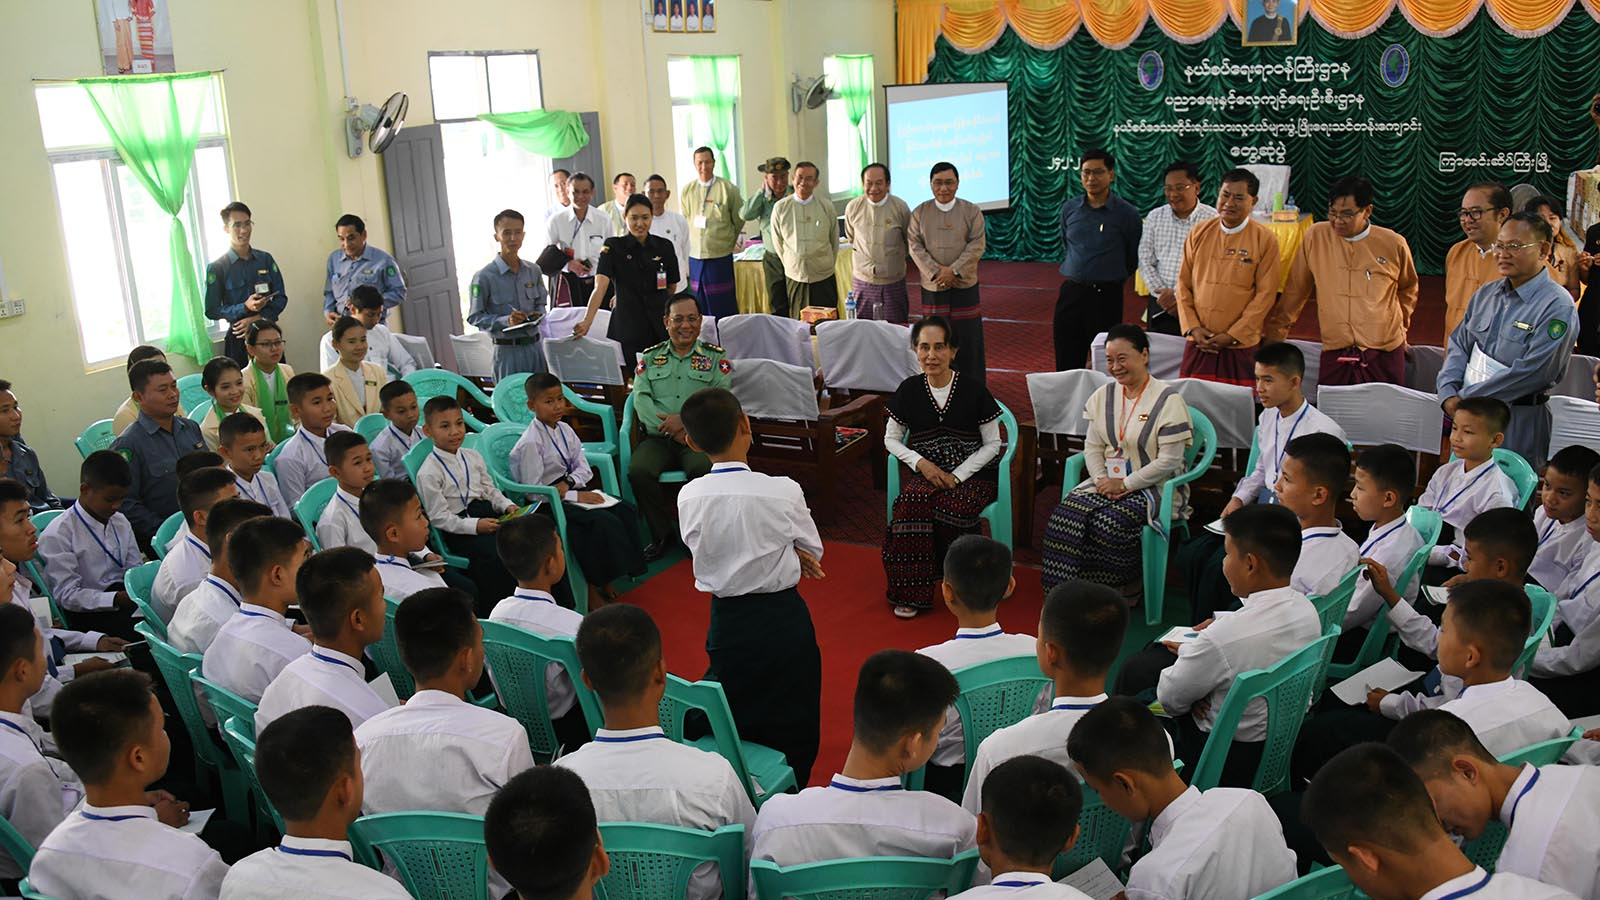 State Counsellor Daw Aung San Suu Kyi meets with students from the training school for the development of national races in Kya-in-Seikkyi, Kayin State yesterday.Photo: MNA